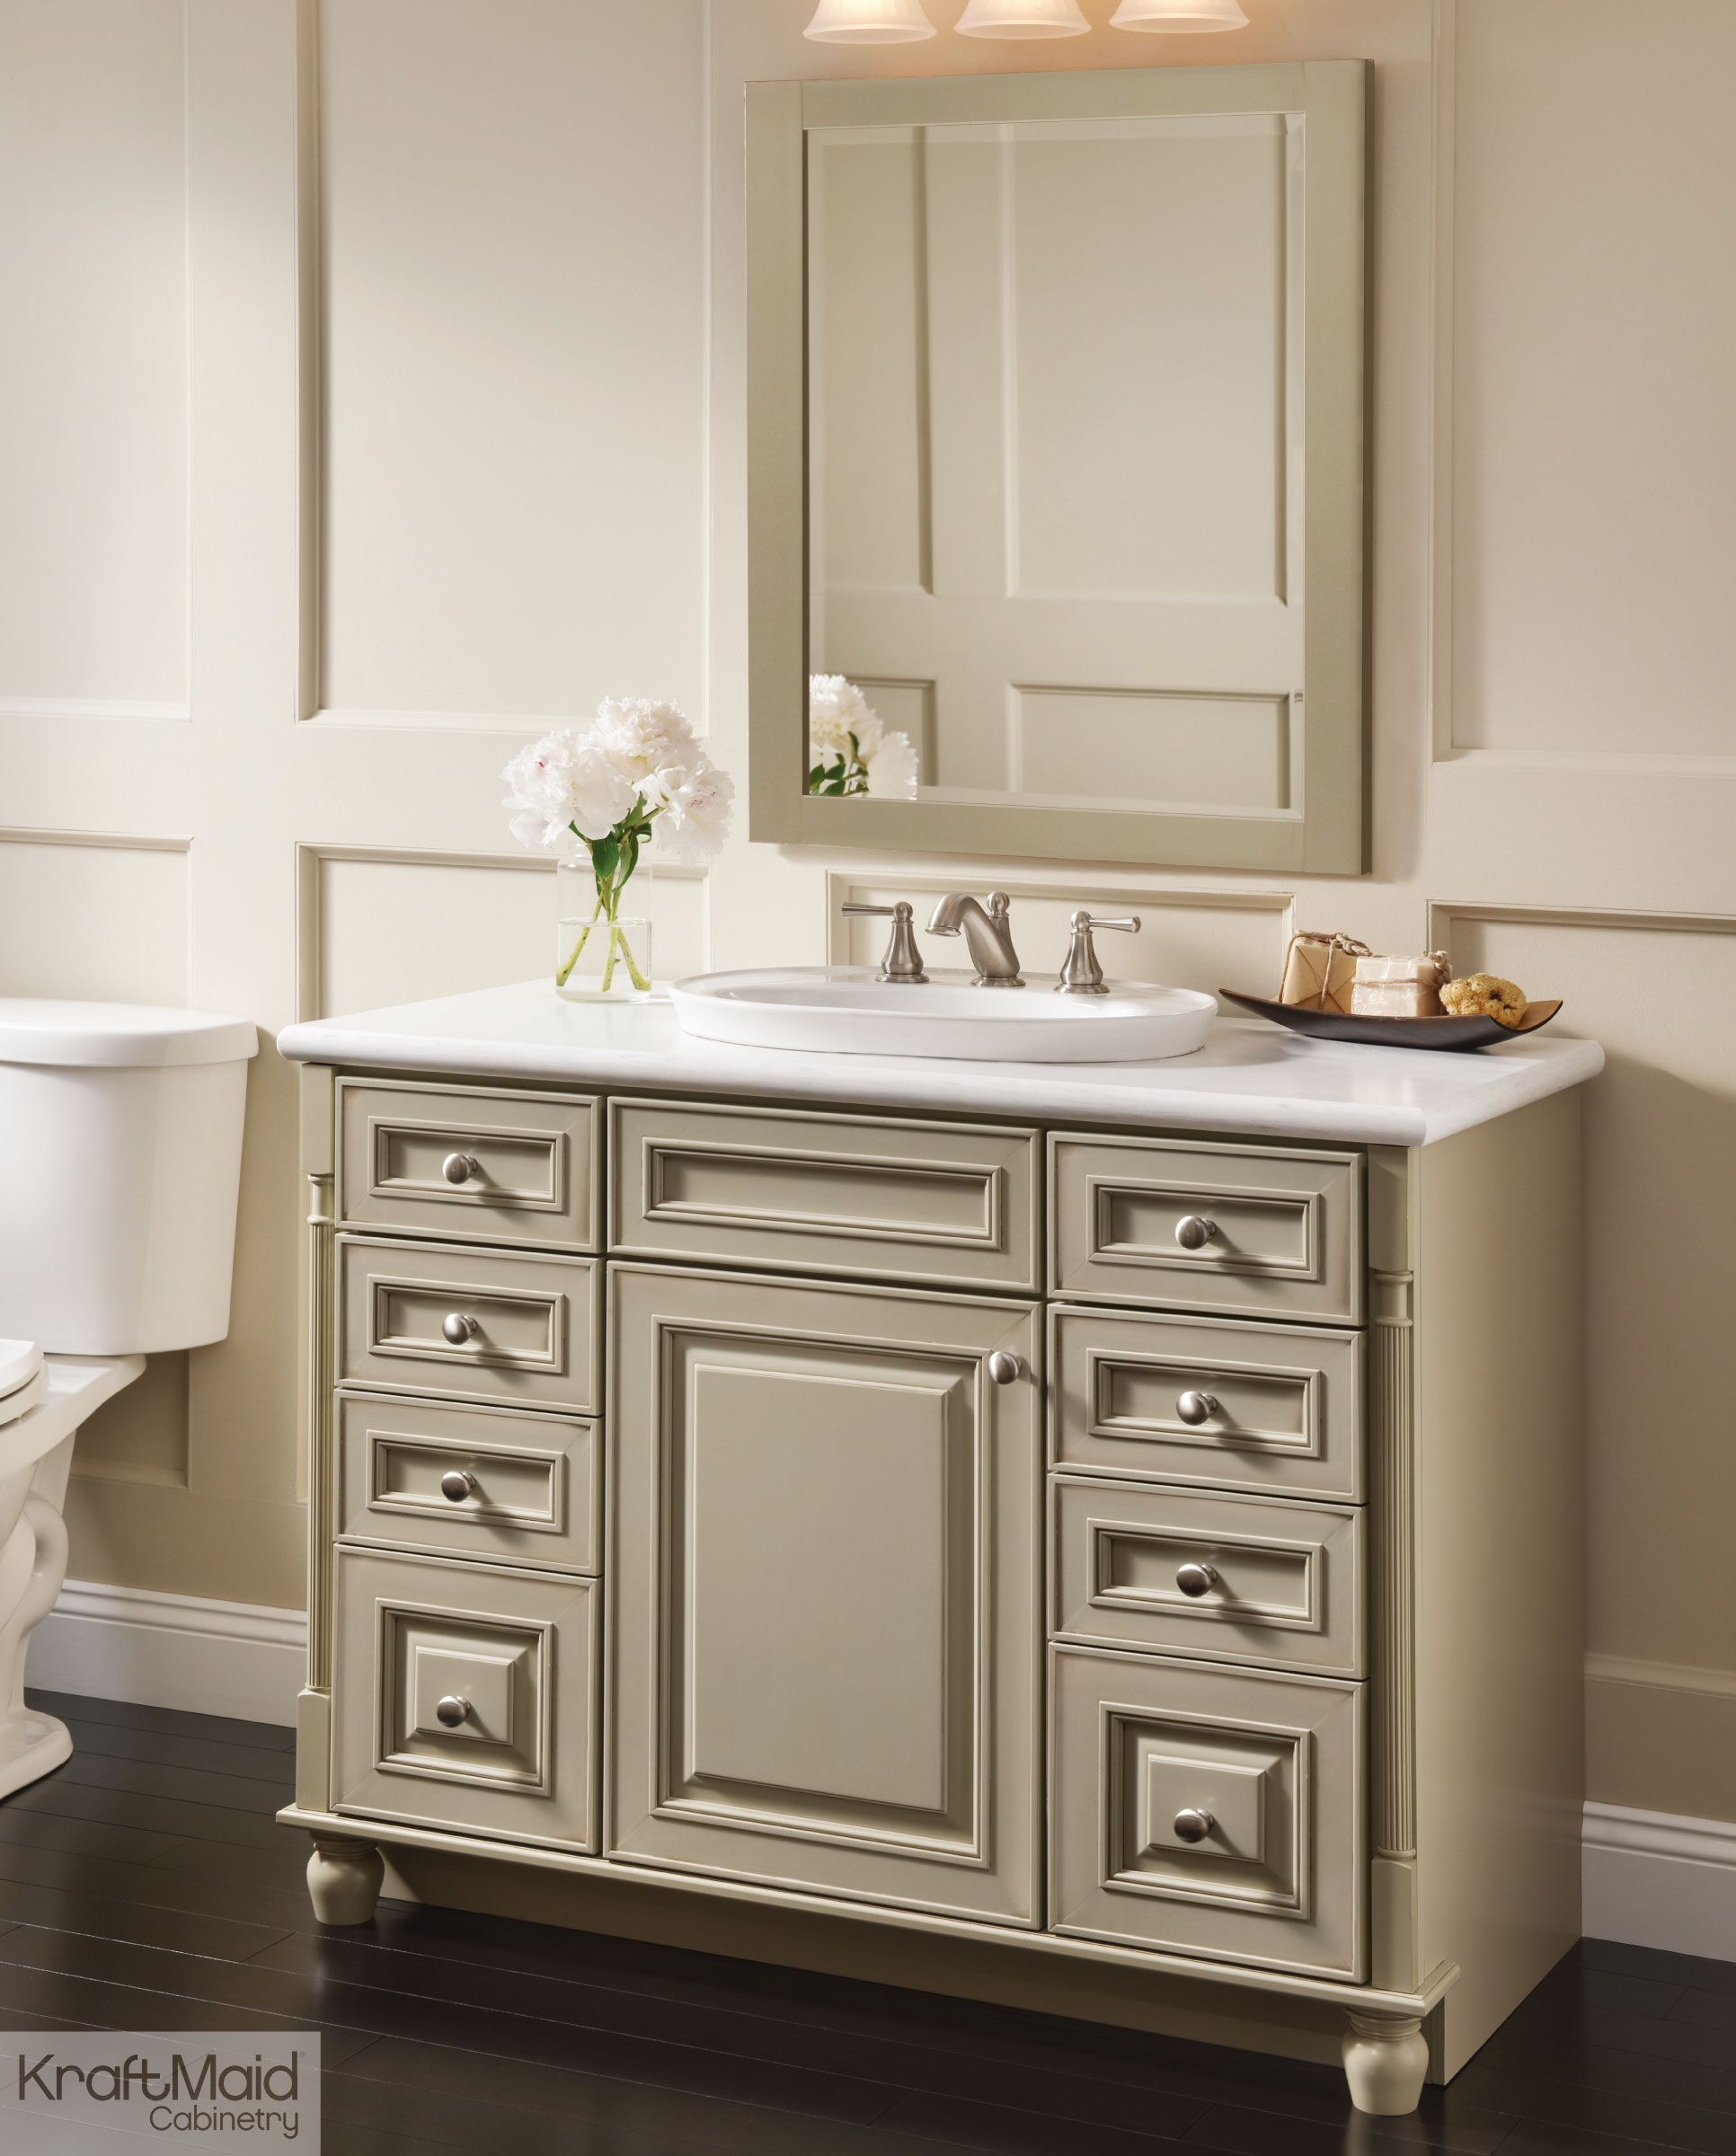 With a premium finish of willow with cocoa patina this for Powder bathroom vanities